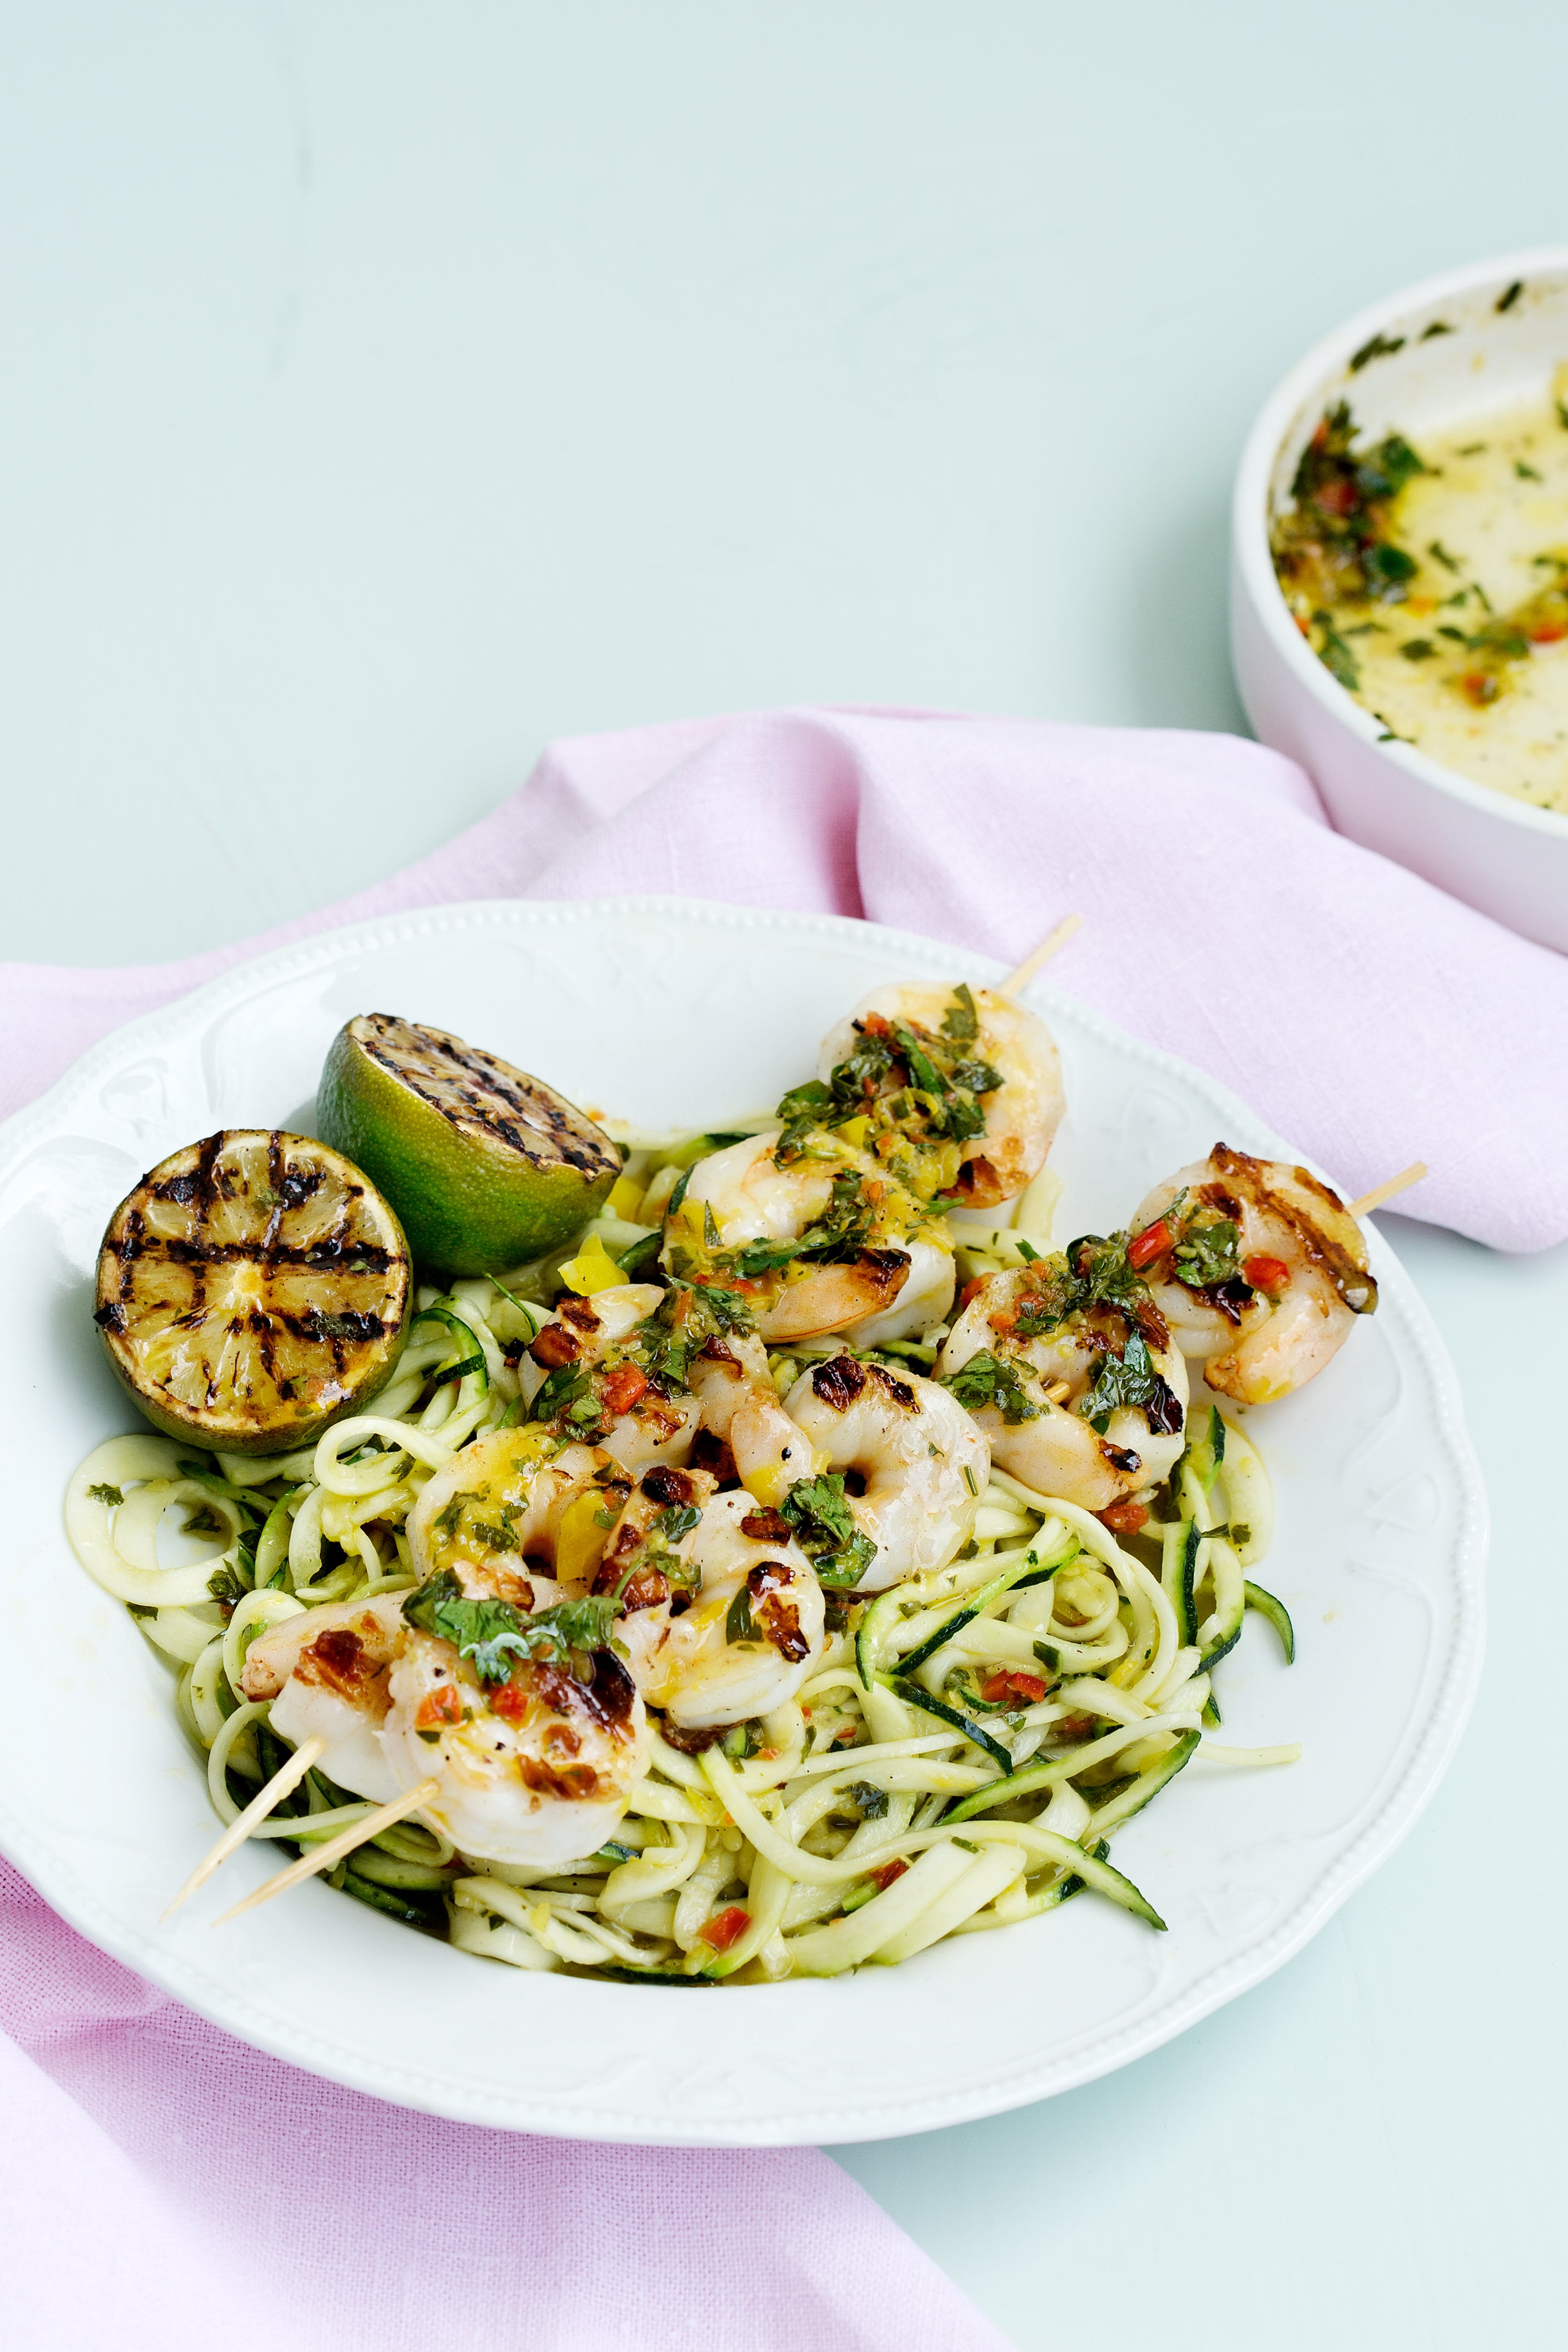 Low-carb grilled shrimp with chimichurri zoodles